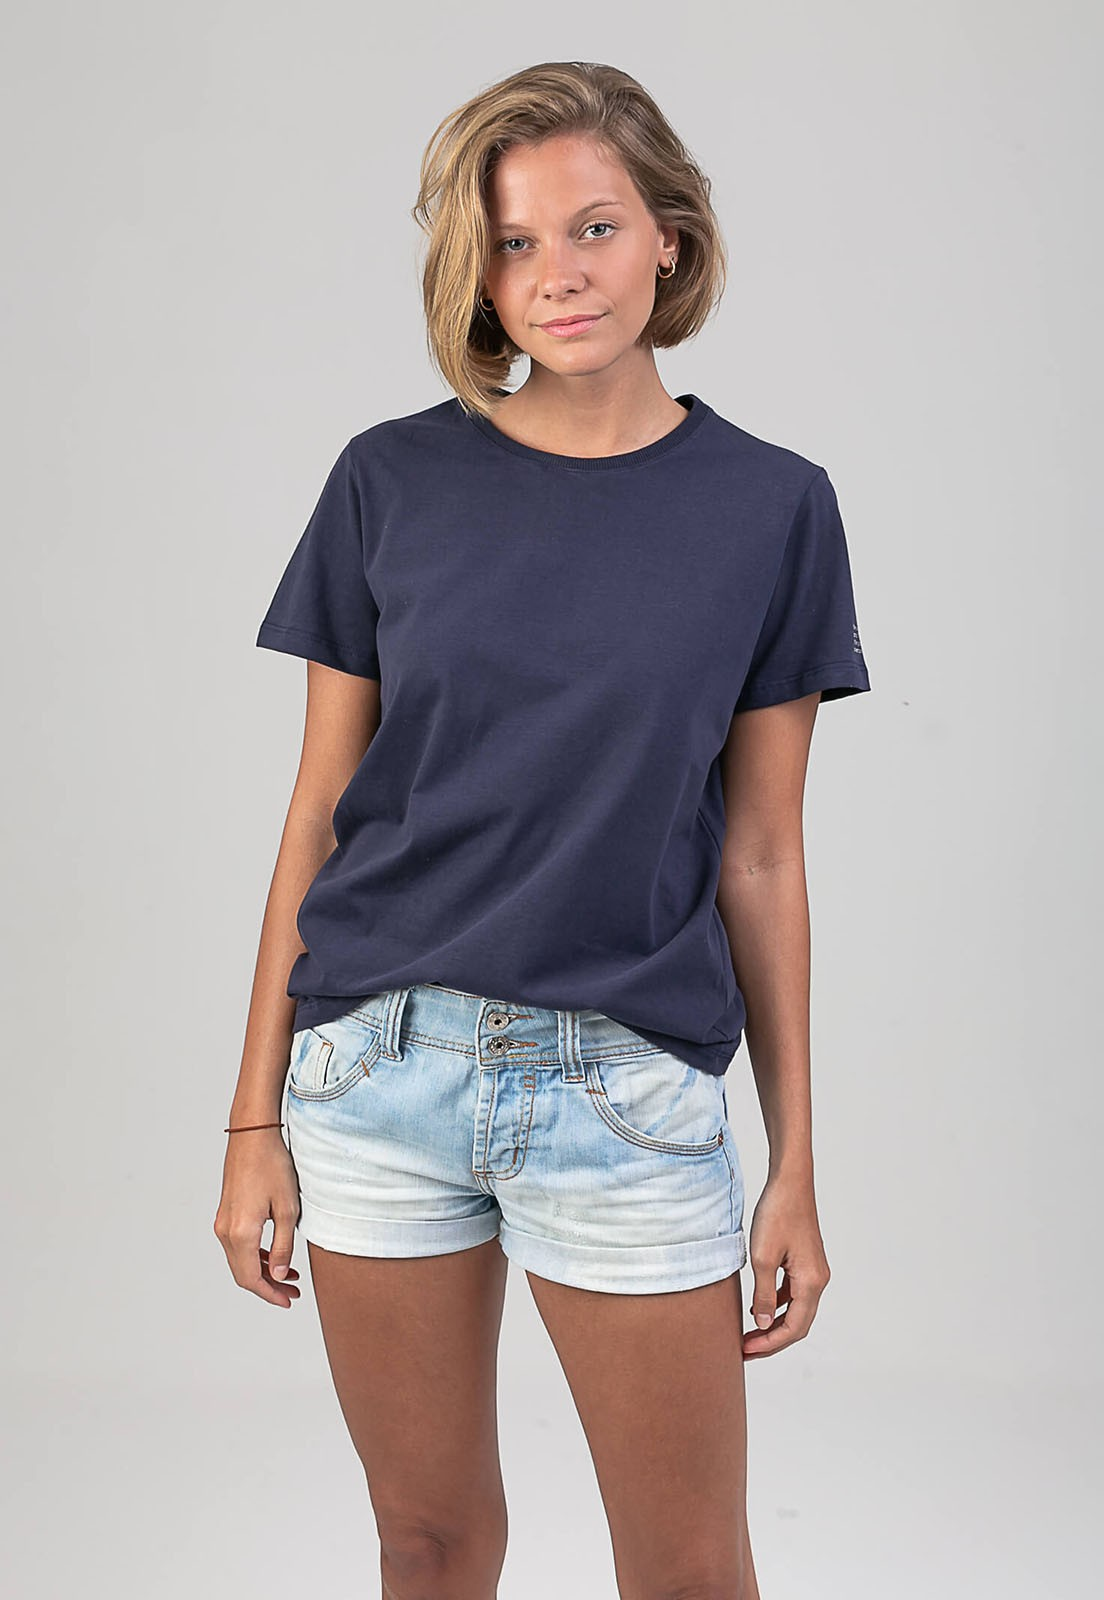 T-shirt Alcateia melty  - melty surf & Co.